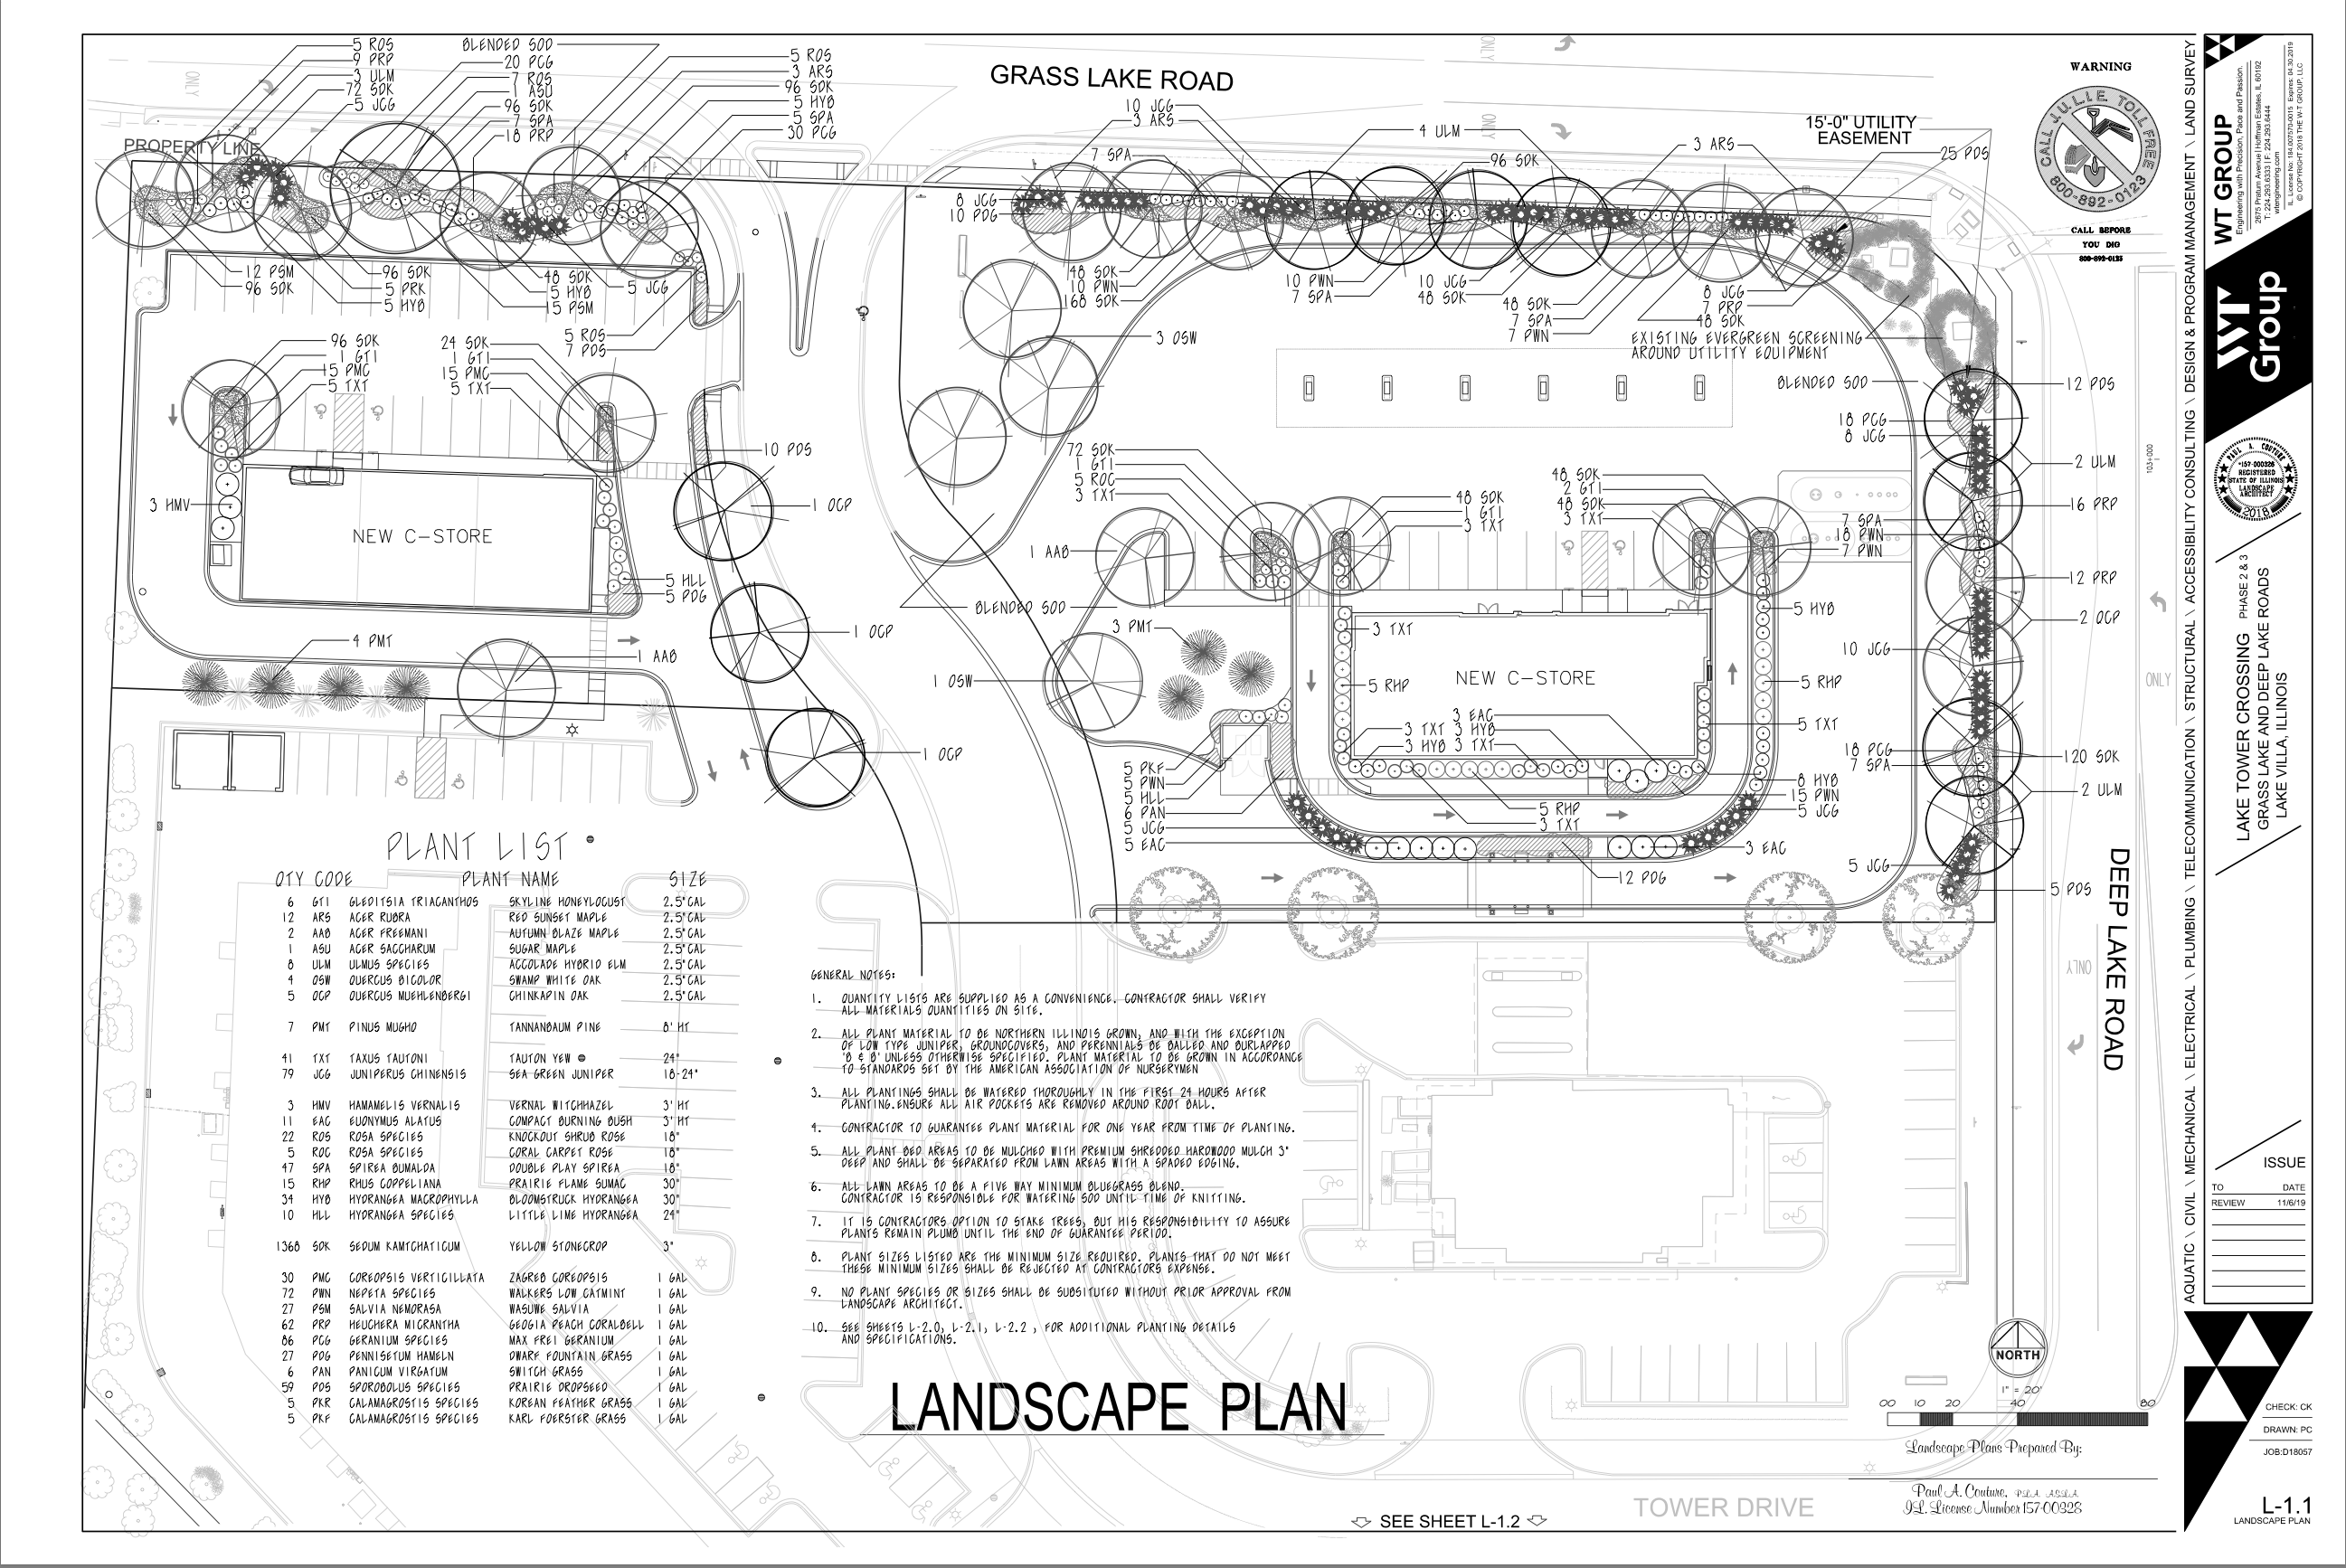 Tower Drive Development Inc.- Landscape Plans